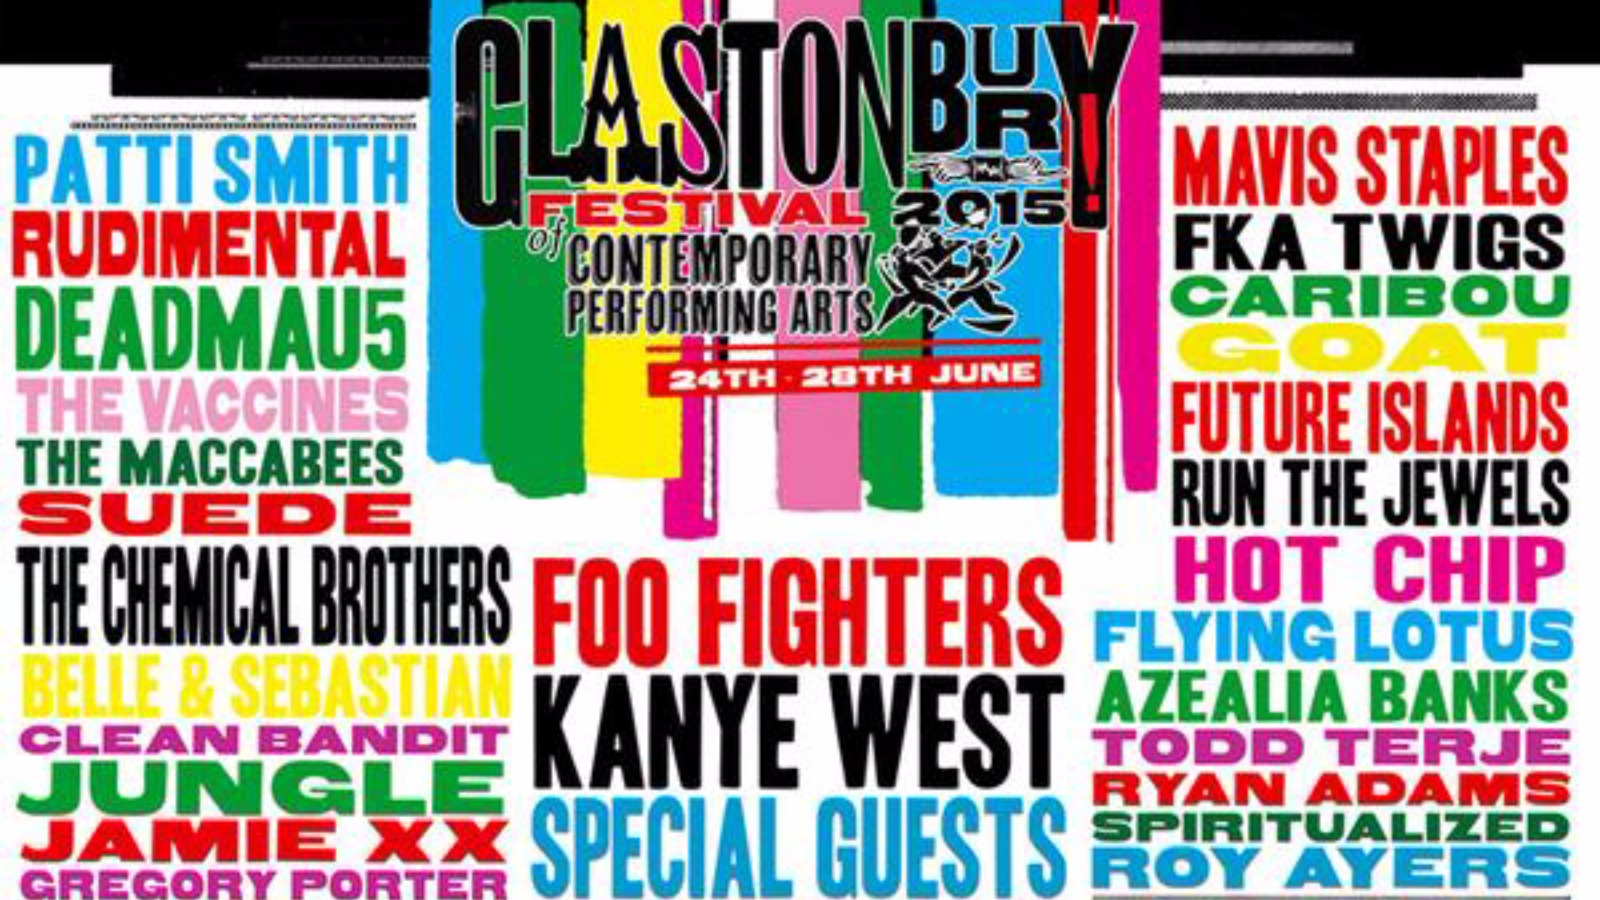 Glastonbury Line Up Update: Glastonbury Festival 2015 Line-up Unveiled